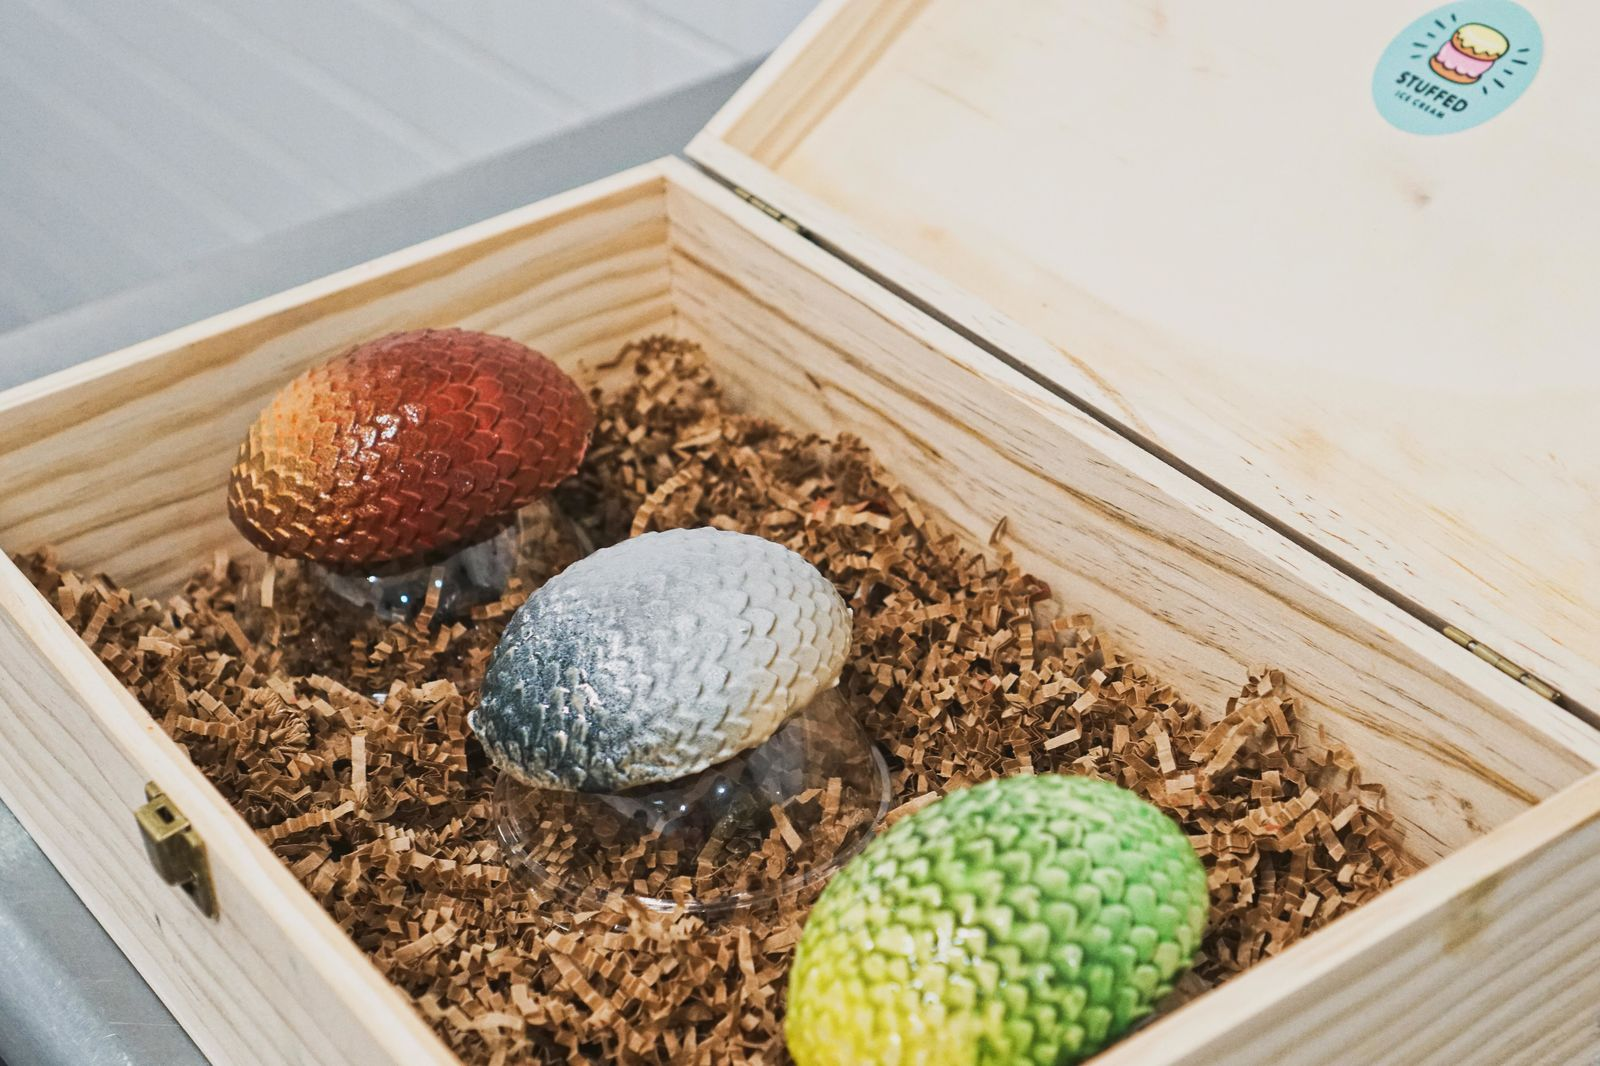 A set of all three dragon eggs at Stuffed Ice Cream costs $35. (Photo: Emily Faber, Sinclair Broadcast Group)